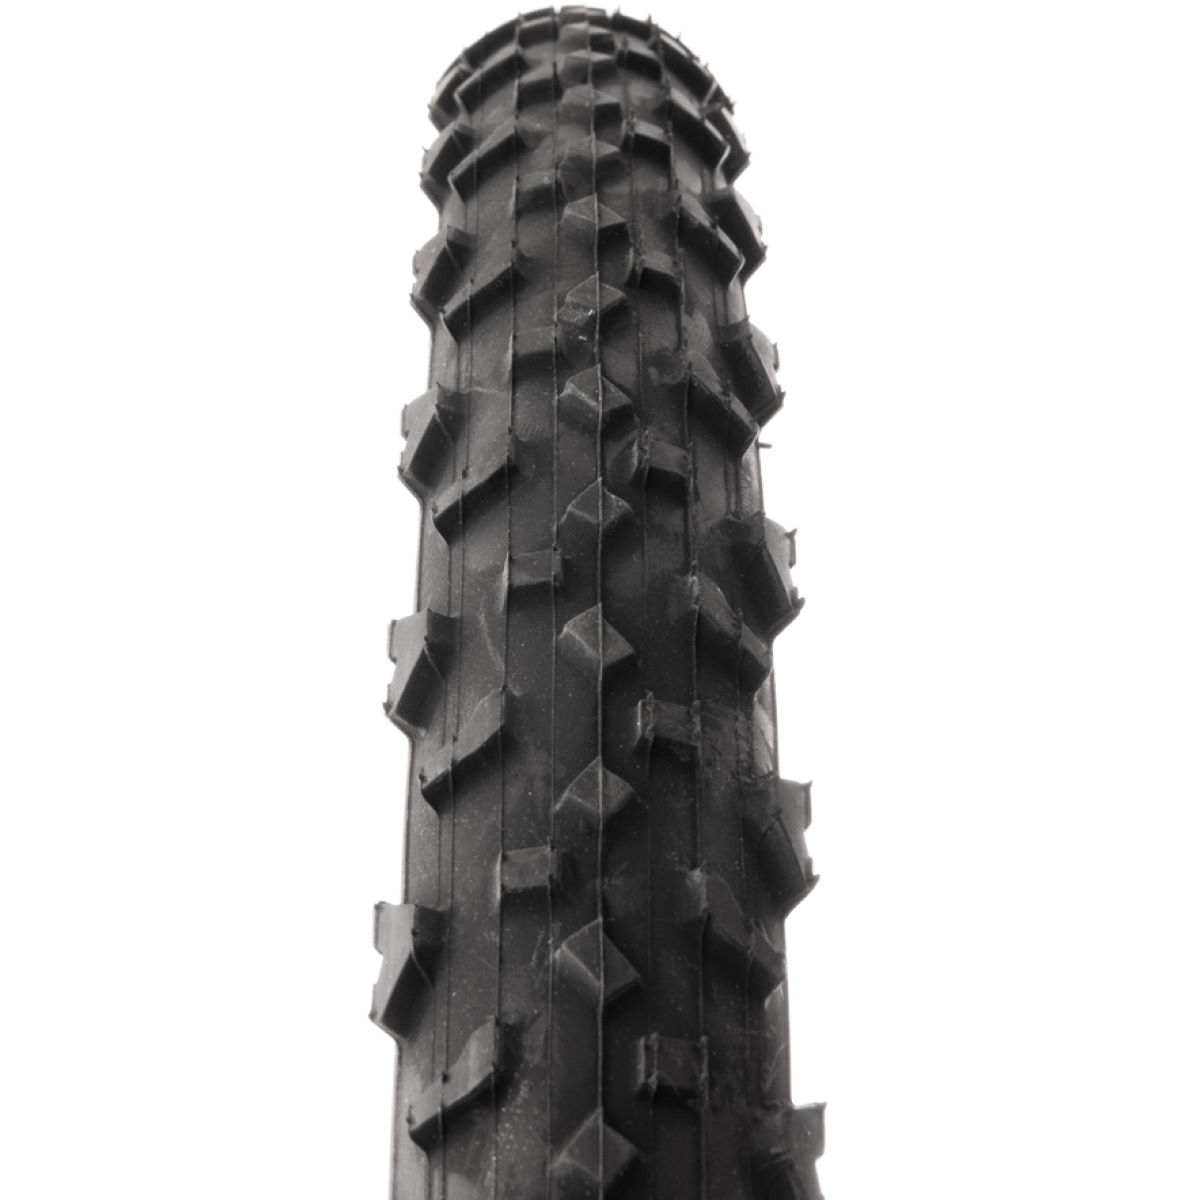 Pneu VTT Michelin Country Cross - 26' 1.95' Wire Bead Noir Pneus